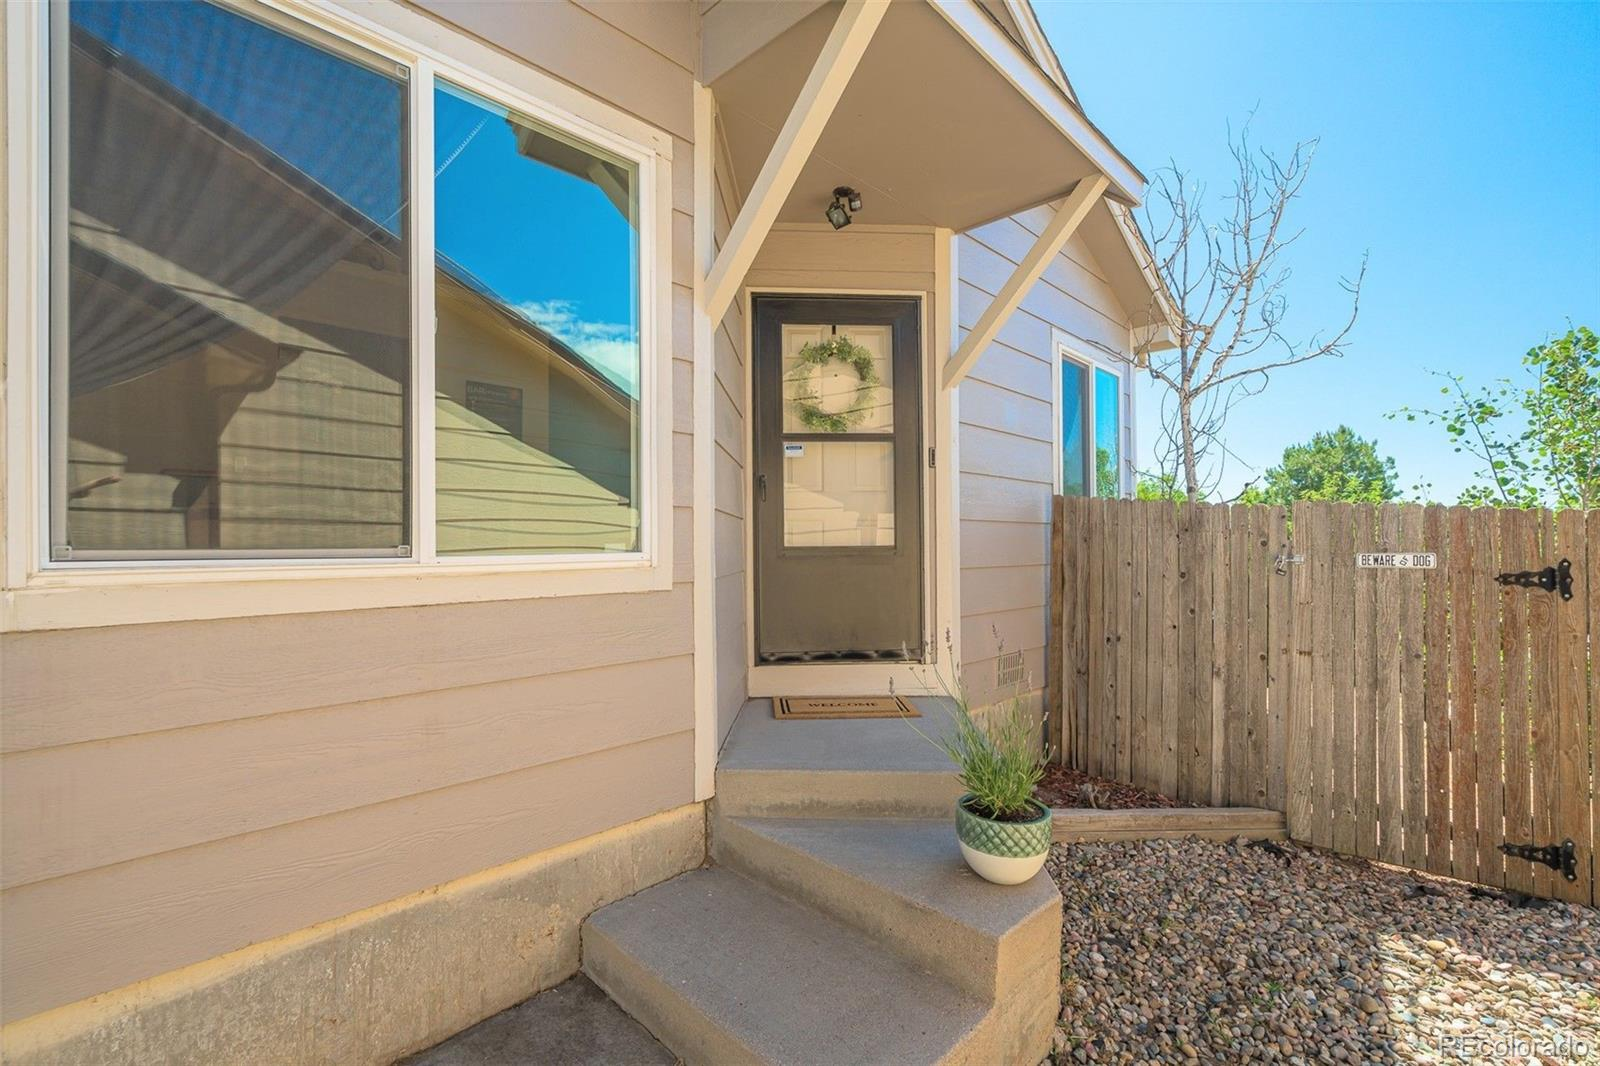 MLS# 3847207 - 3 - 6565 Mohican Drive, Colorado Springs, CO 80915